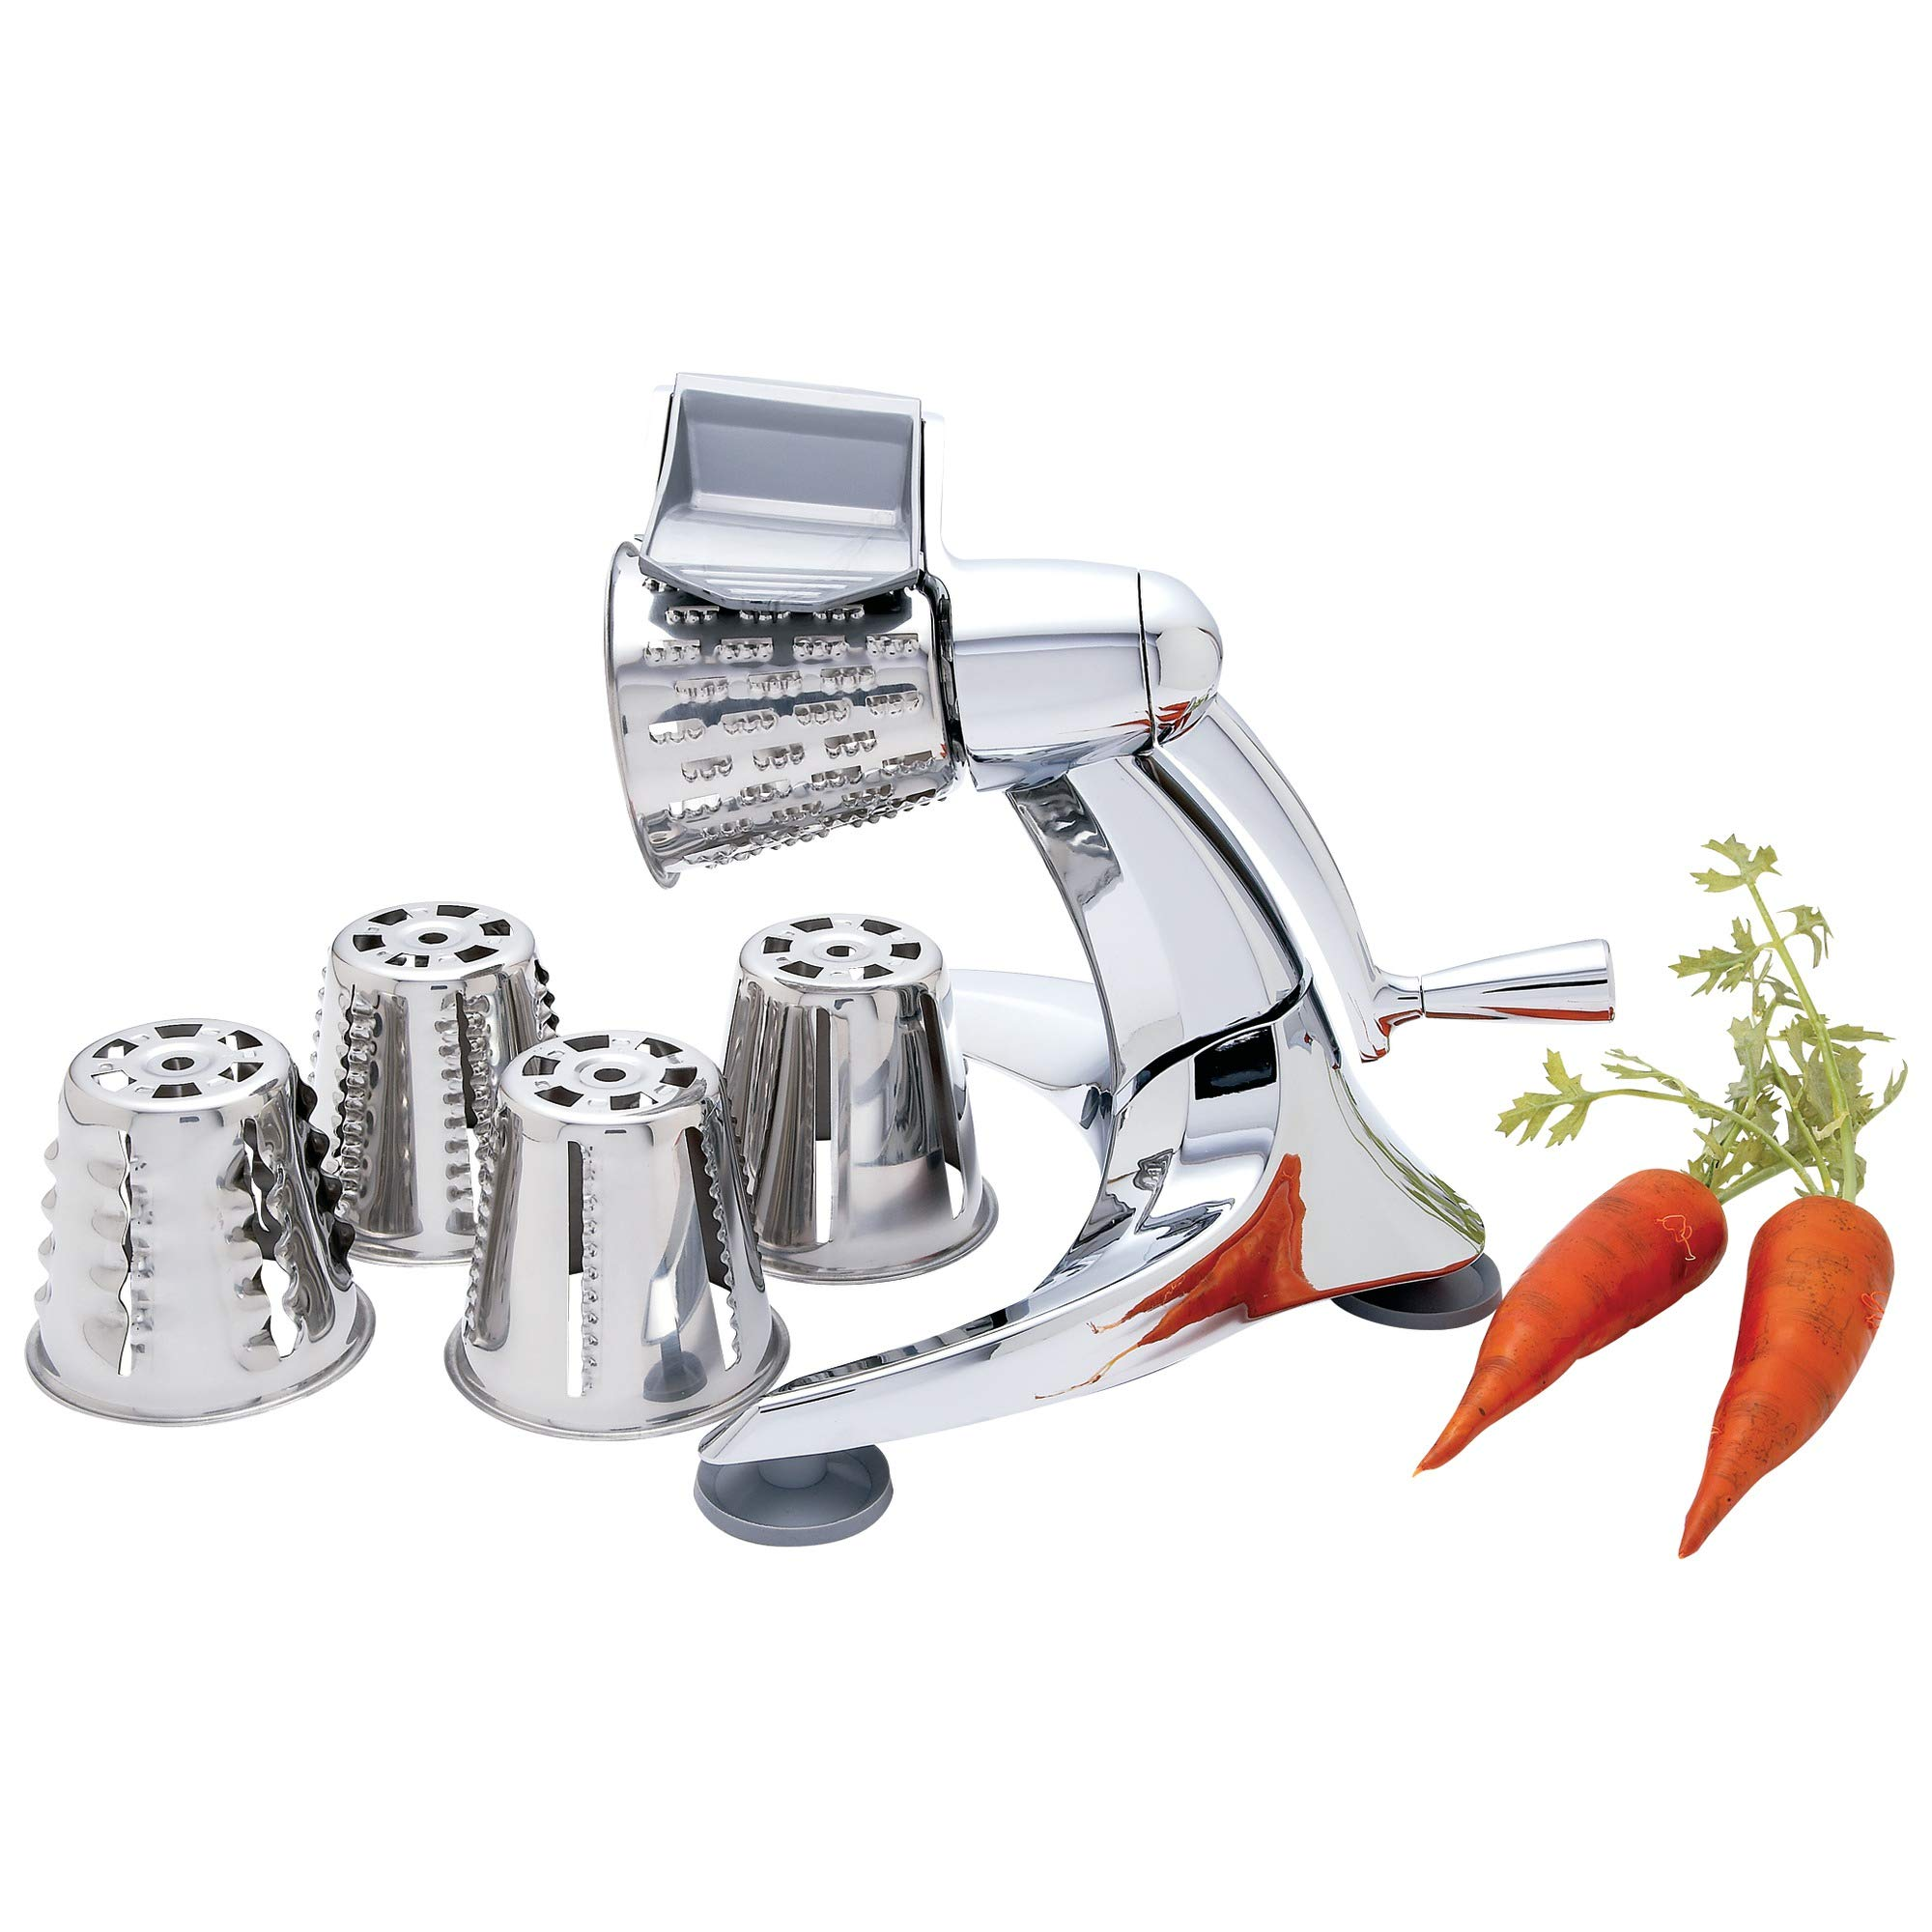 Royal Giant Vegetable Chopper by Royal Giant